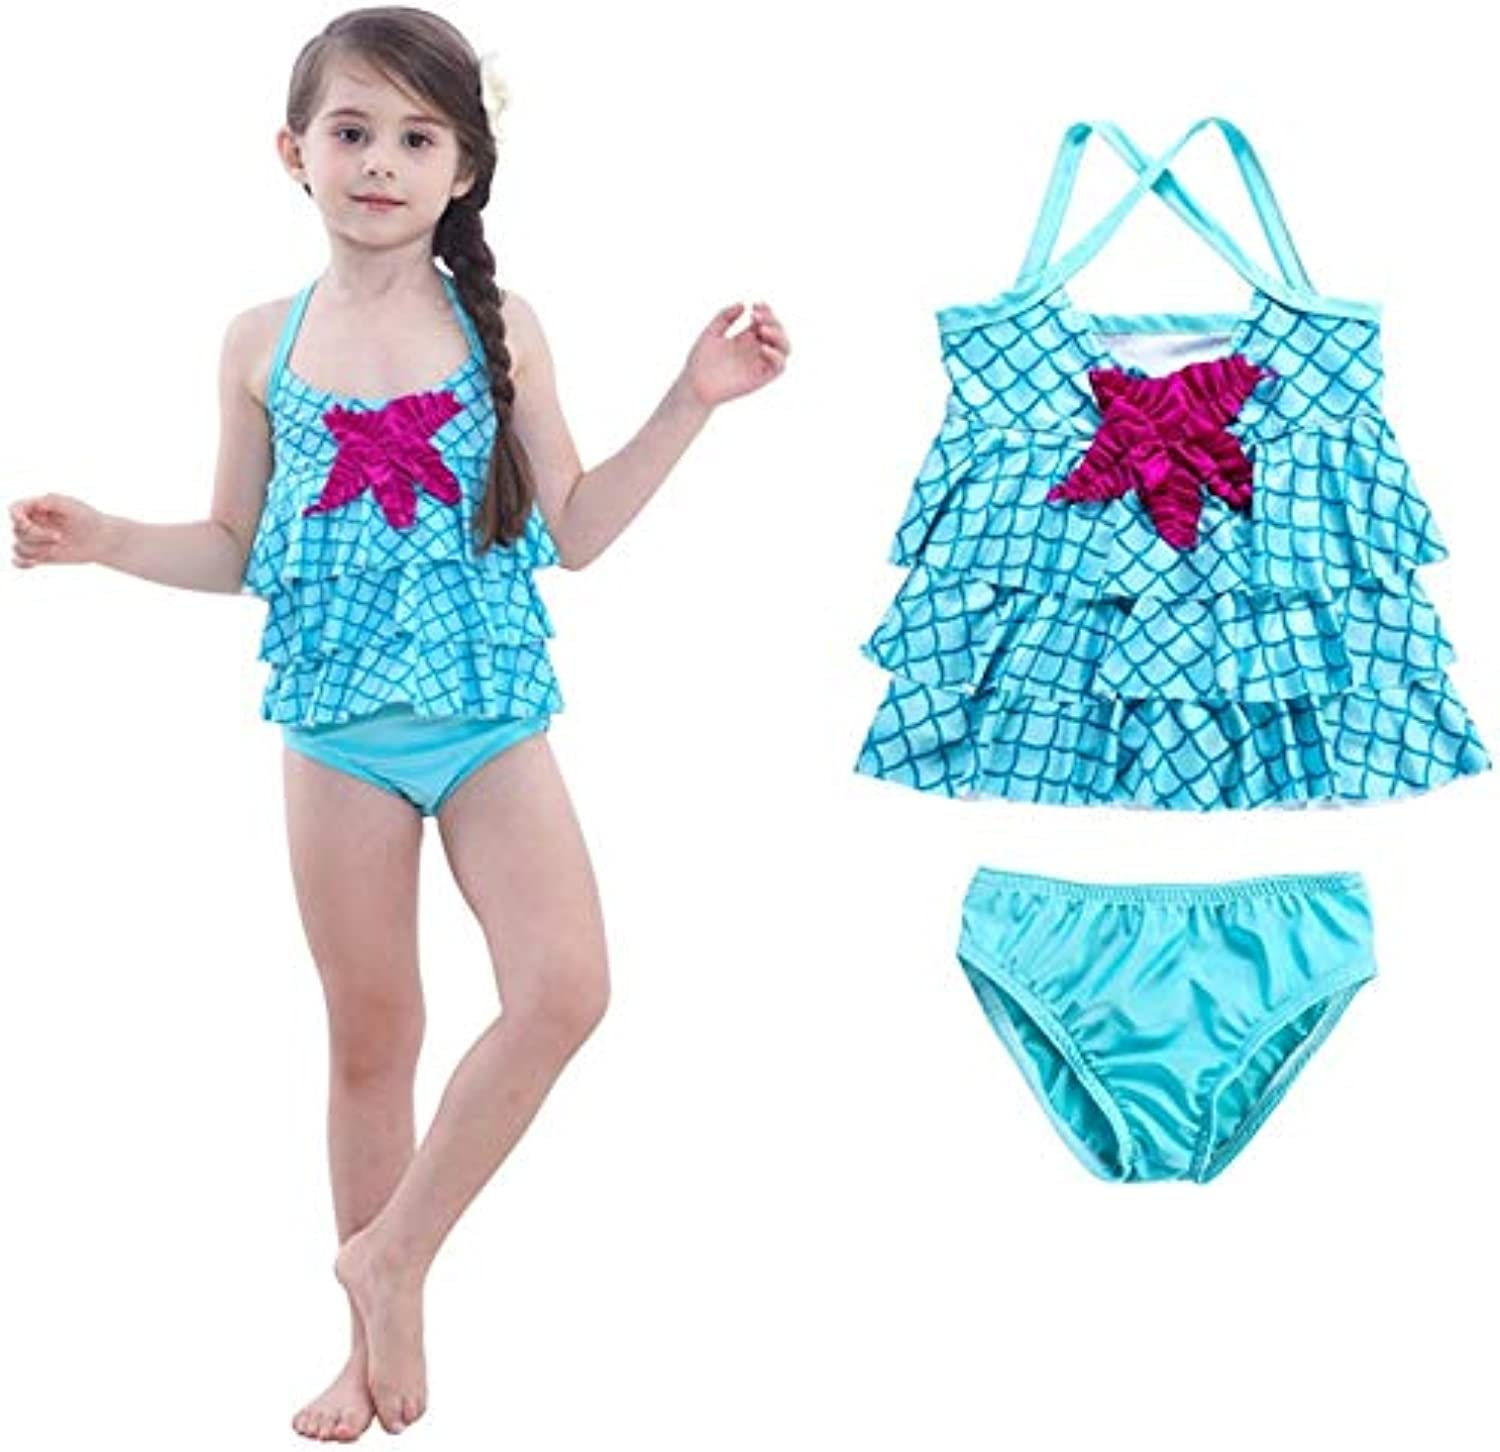 6debf21699a Anstorematealliance Watersports Swimming Clothes Baby Girl Mermaid Ruffle  Floral Beach Swimwear Bikini Set, Size 100